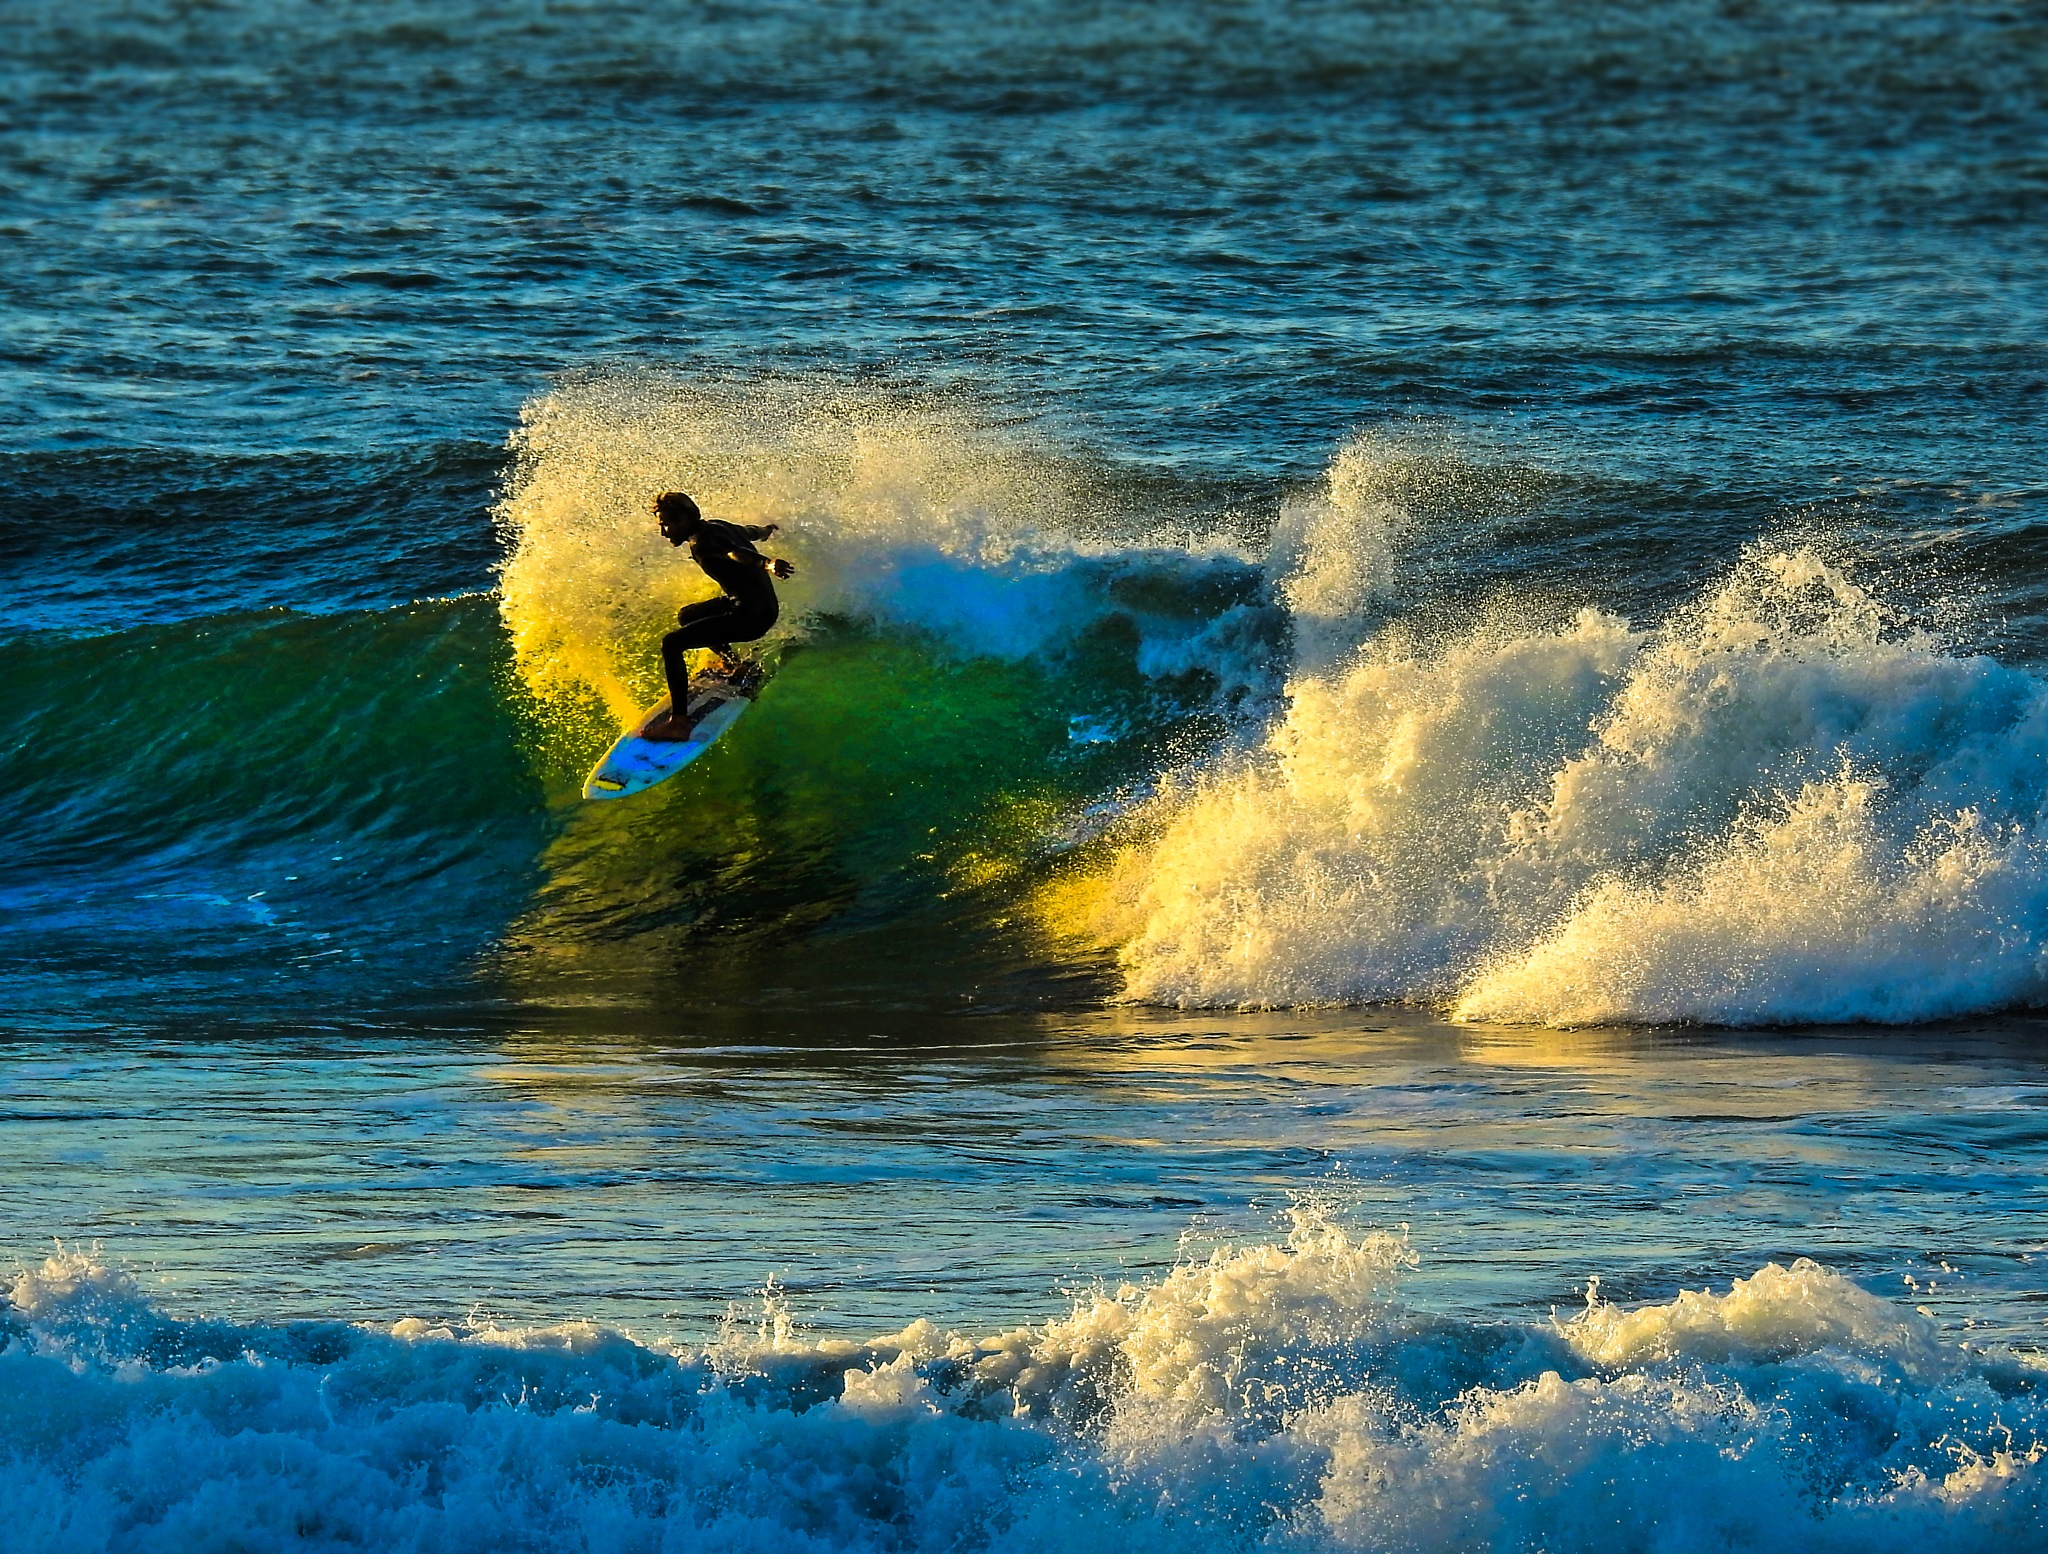 Surfing in Biarritz, France by JMCtronic